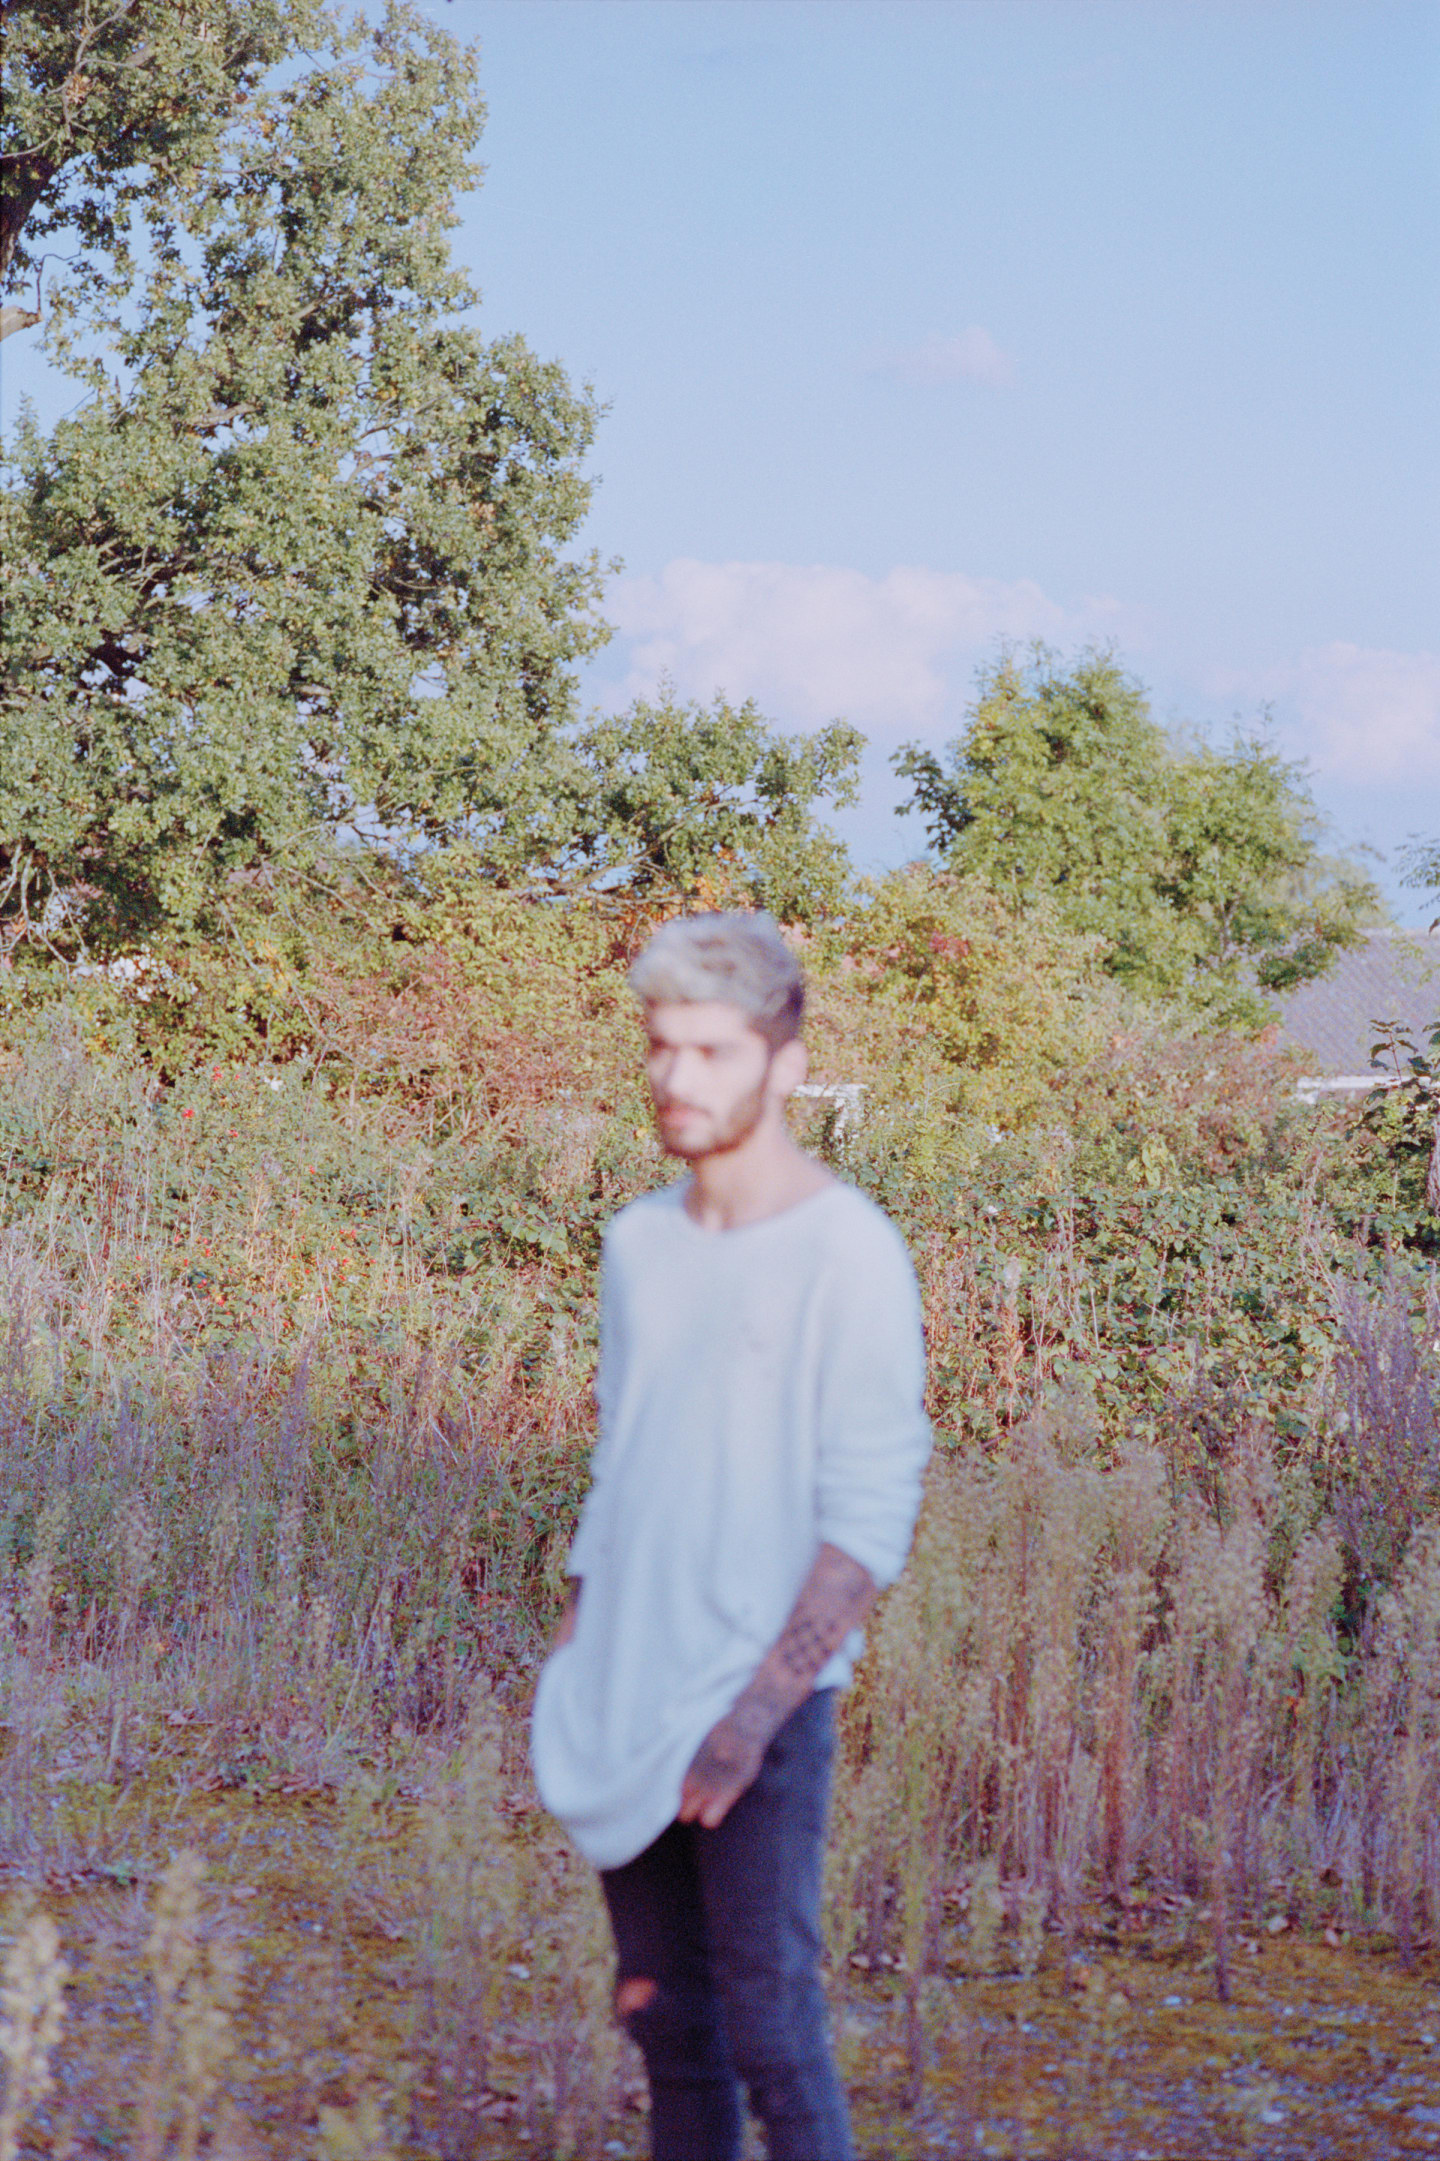 Zayn Malik's Next Direction | The FADER